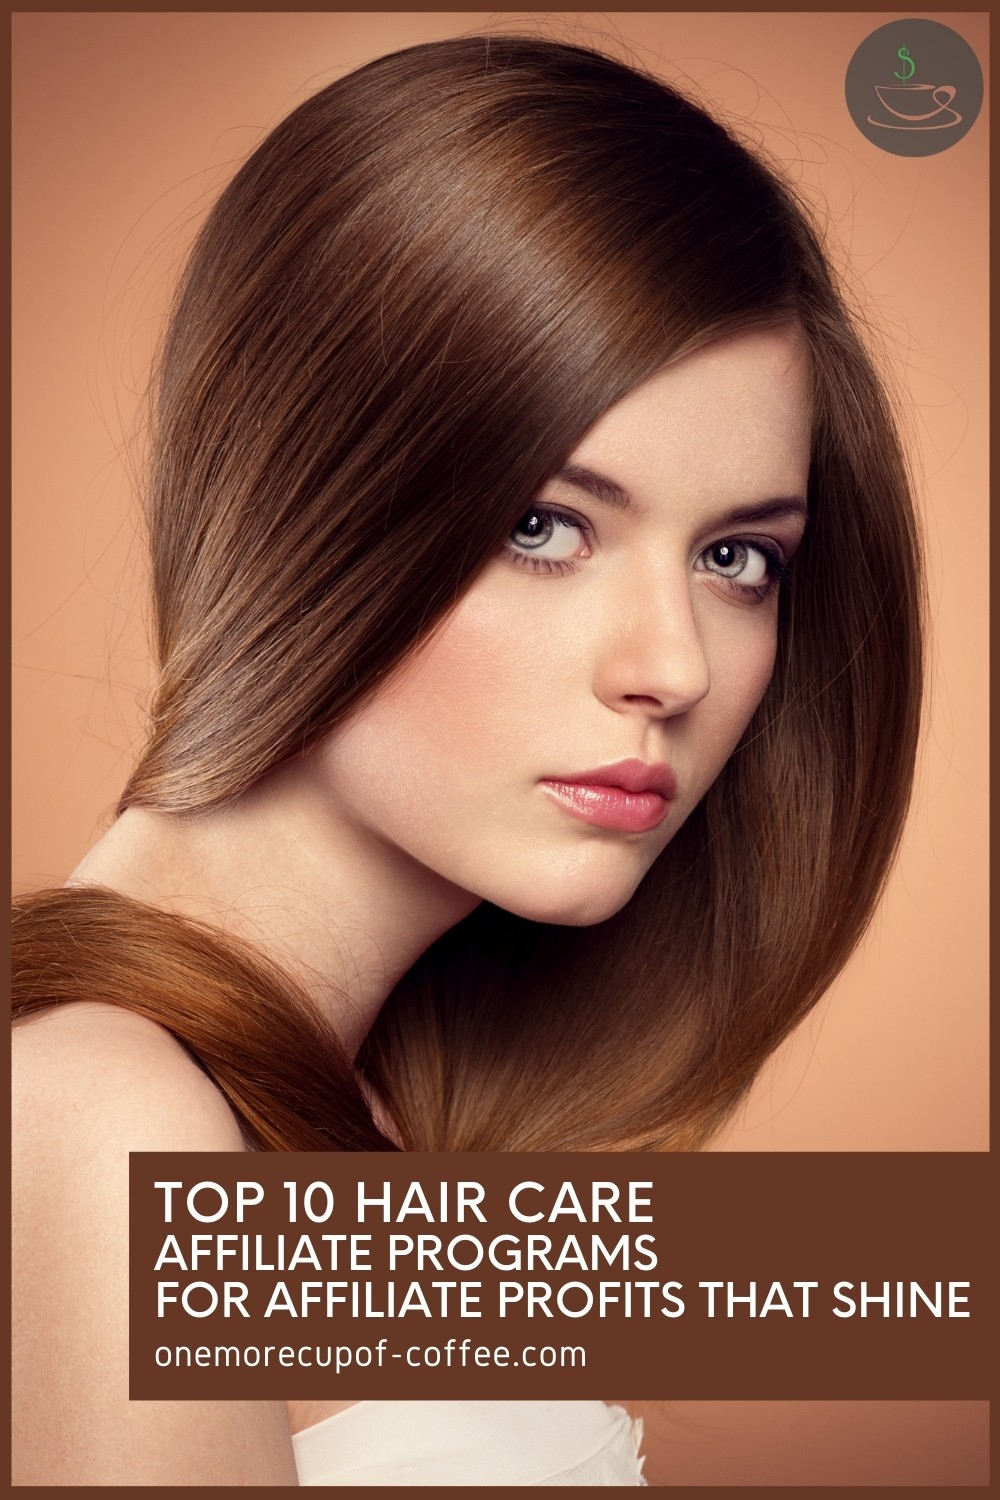 """woman with chestnut brown long hair with a text overlay """"Top 10 Hair Care Affiliate Programs For Affiliate Profits That Shine"""""""